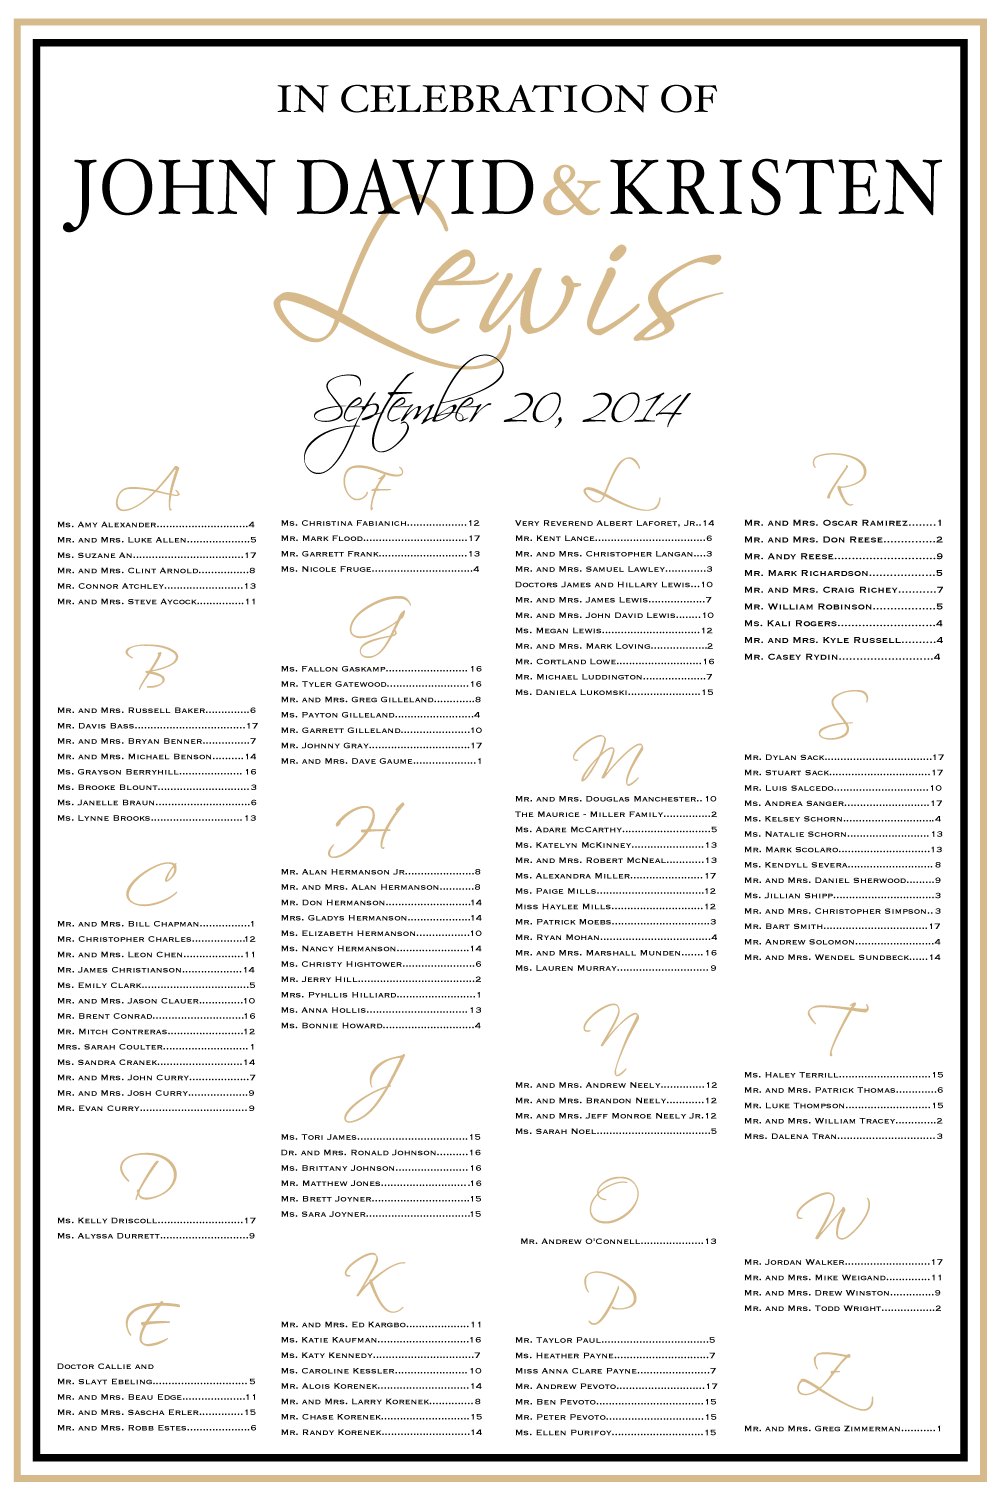 Wedding seating chart black and gold colors table also best custom boards images reception rh pinterest